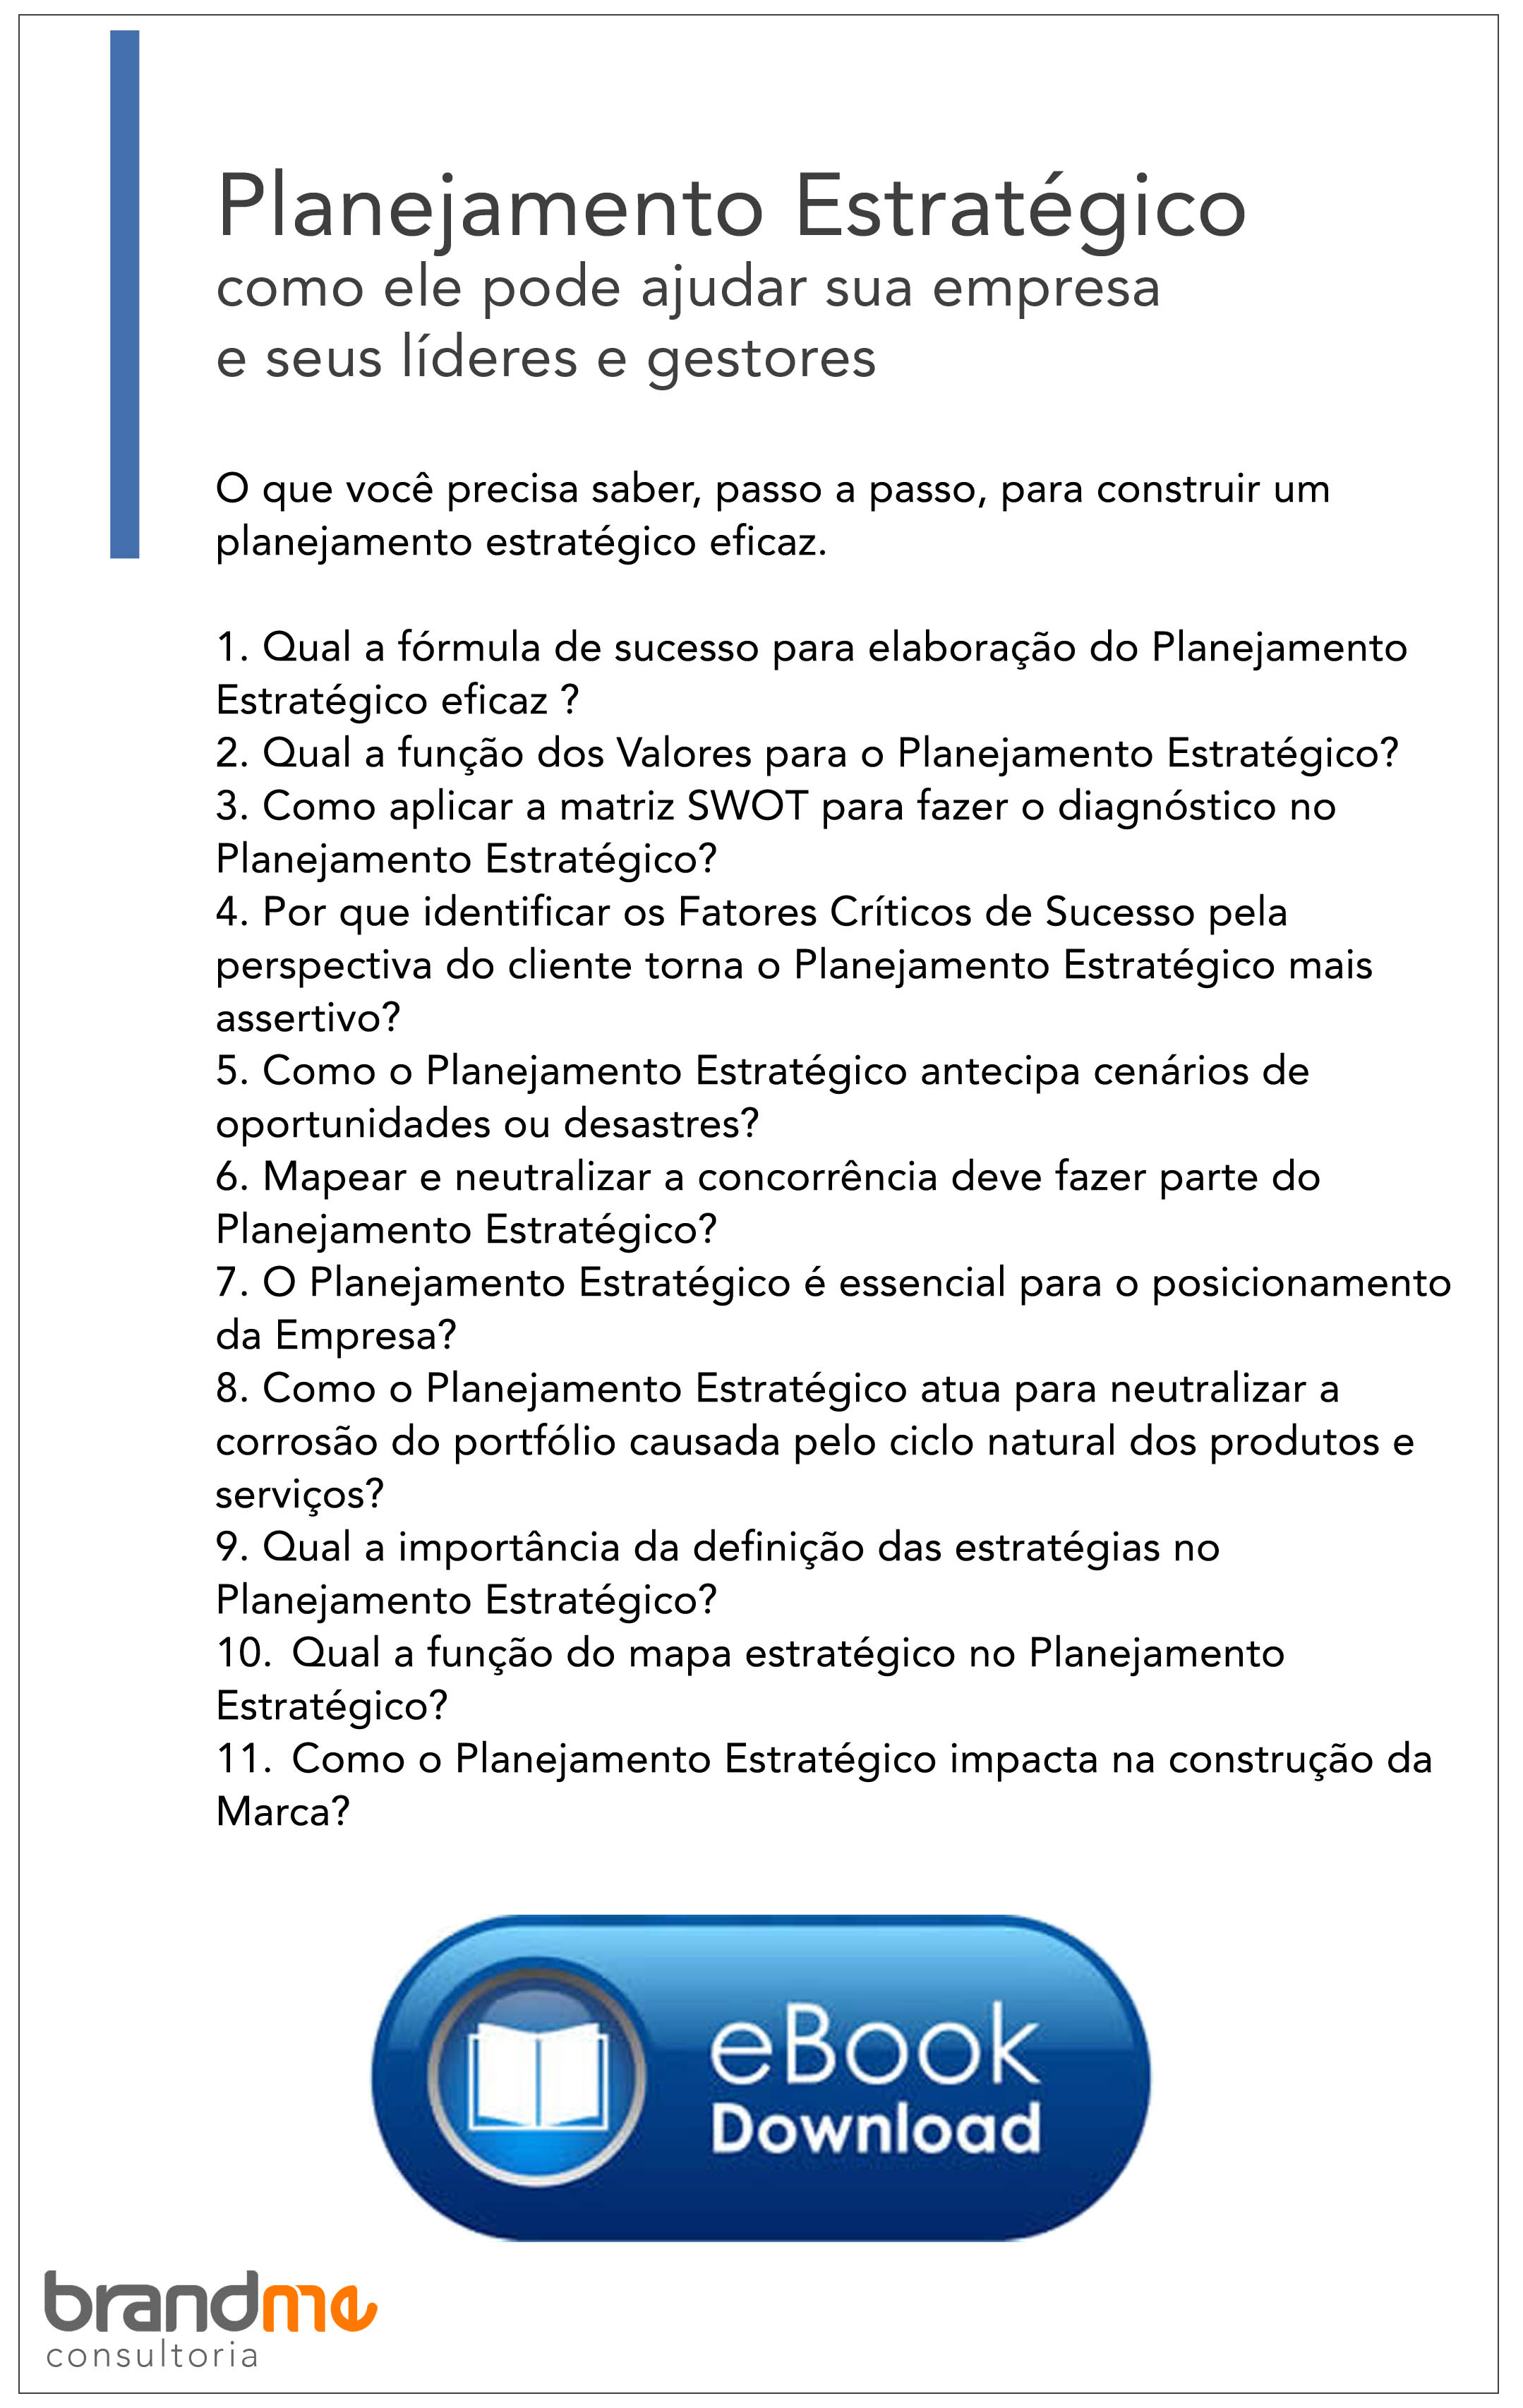 download ebook - Planejamento Estratégico